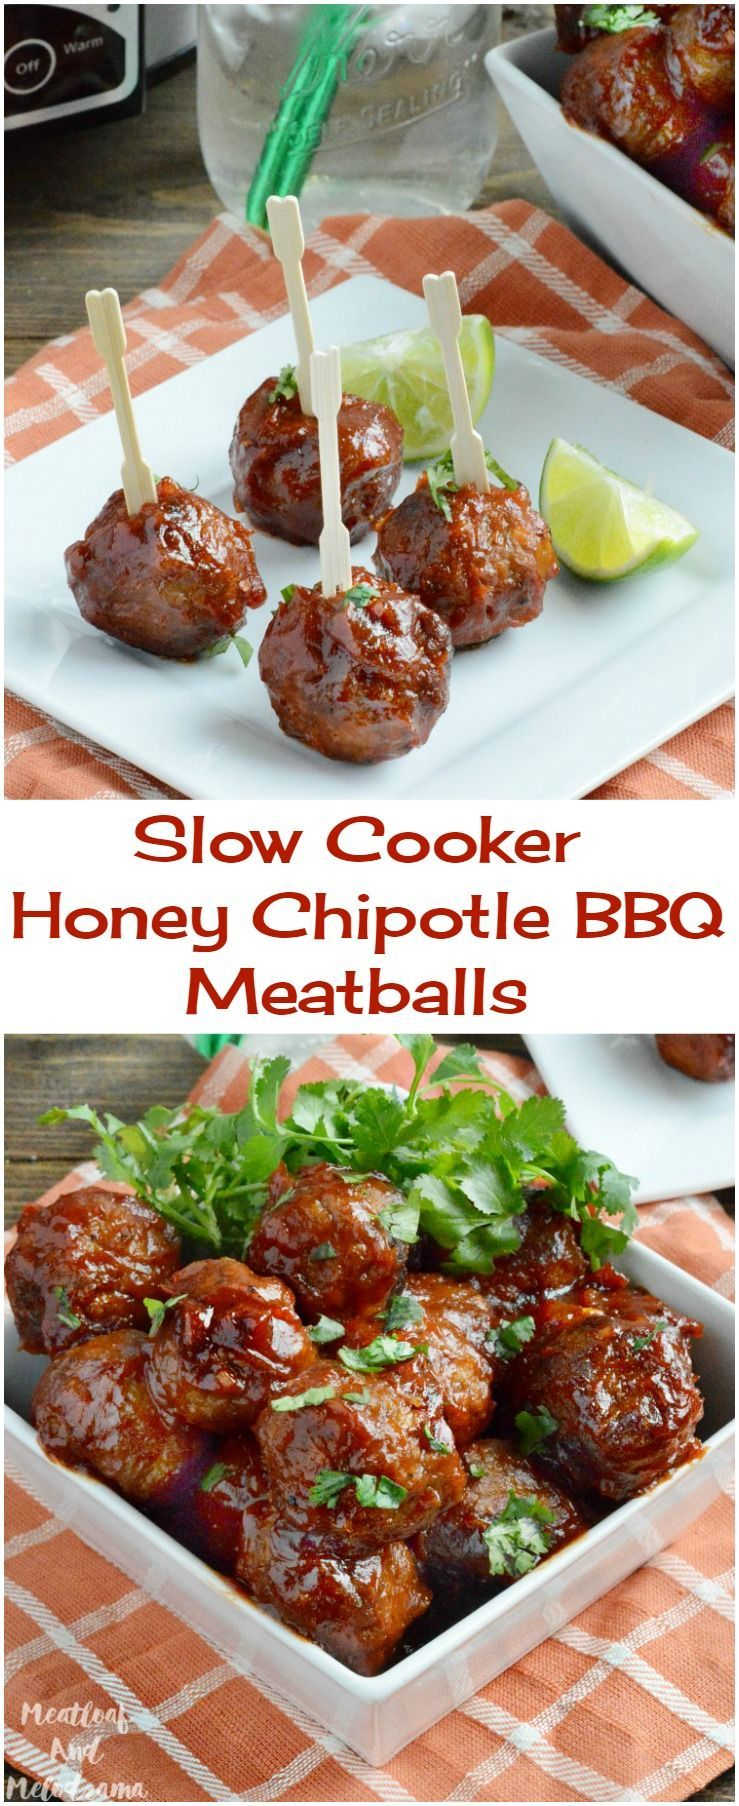 Slow Cooker Honey Chipotle Bbq Meatballs Recipe Spicy